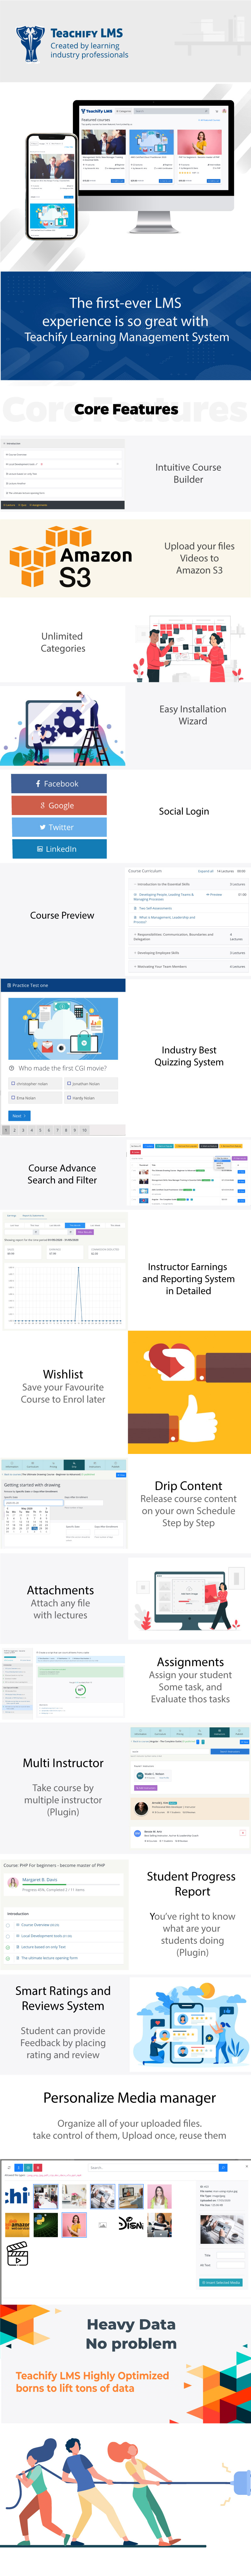 Teachify LMS – Powerful Learning Management System - 4